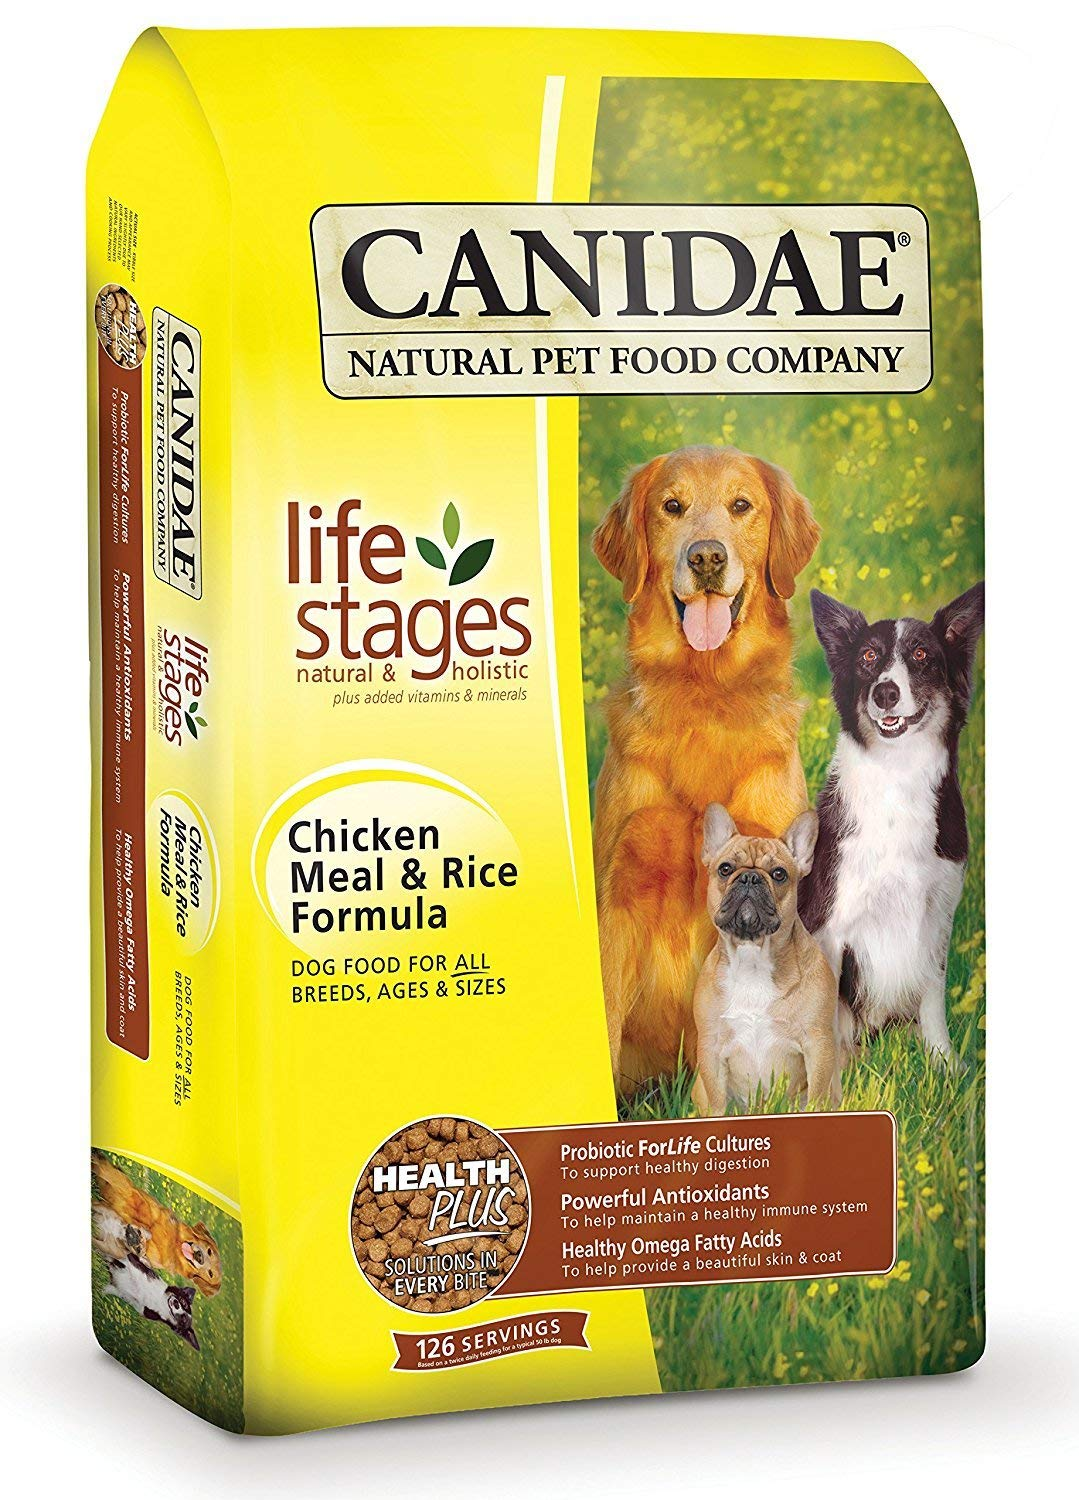 CANIDAELife Stages Dry Dog Food for Puppies, Adults & Seniors, Chicken Meal & Rice vyiJax,2 Pack (5 Pound)